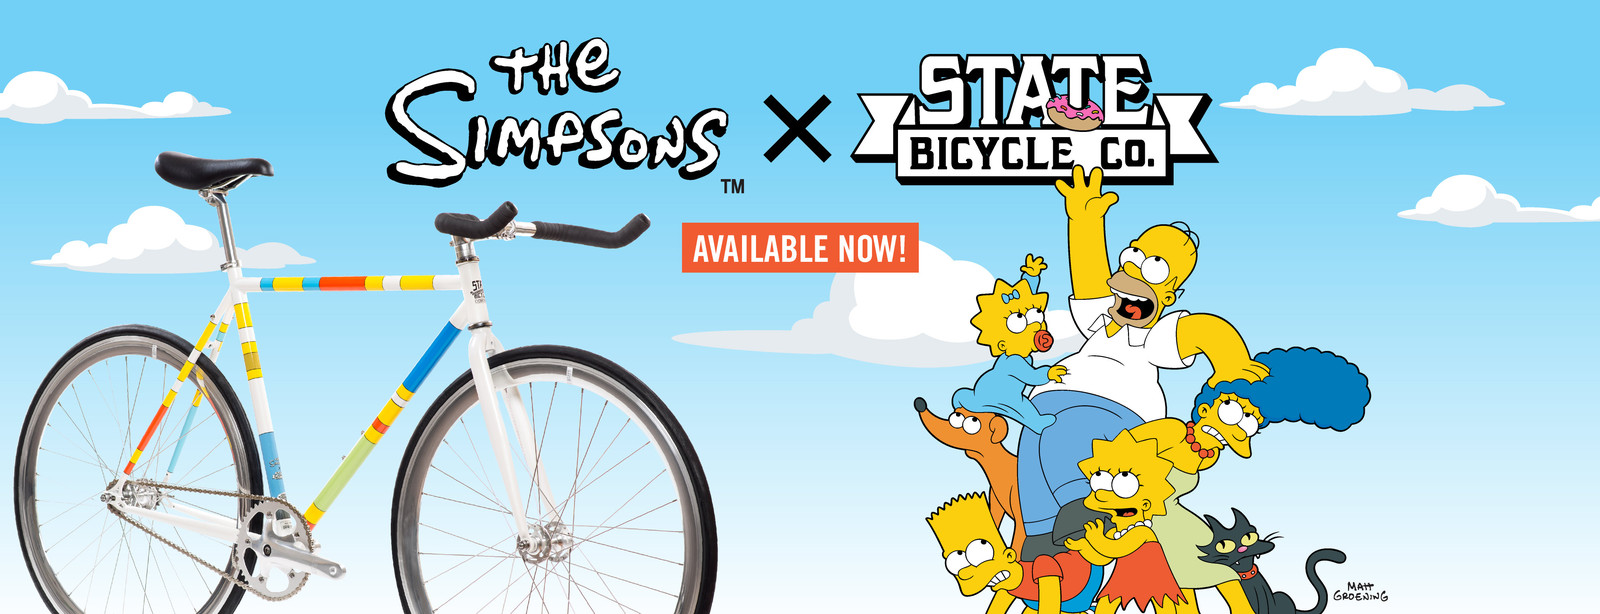 The Simpsons x State Bicycle Co. launch!